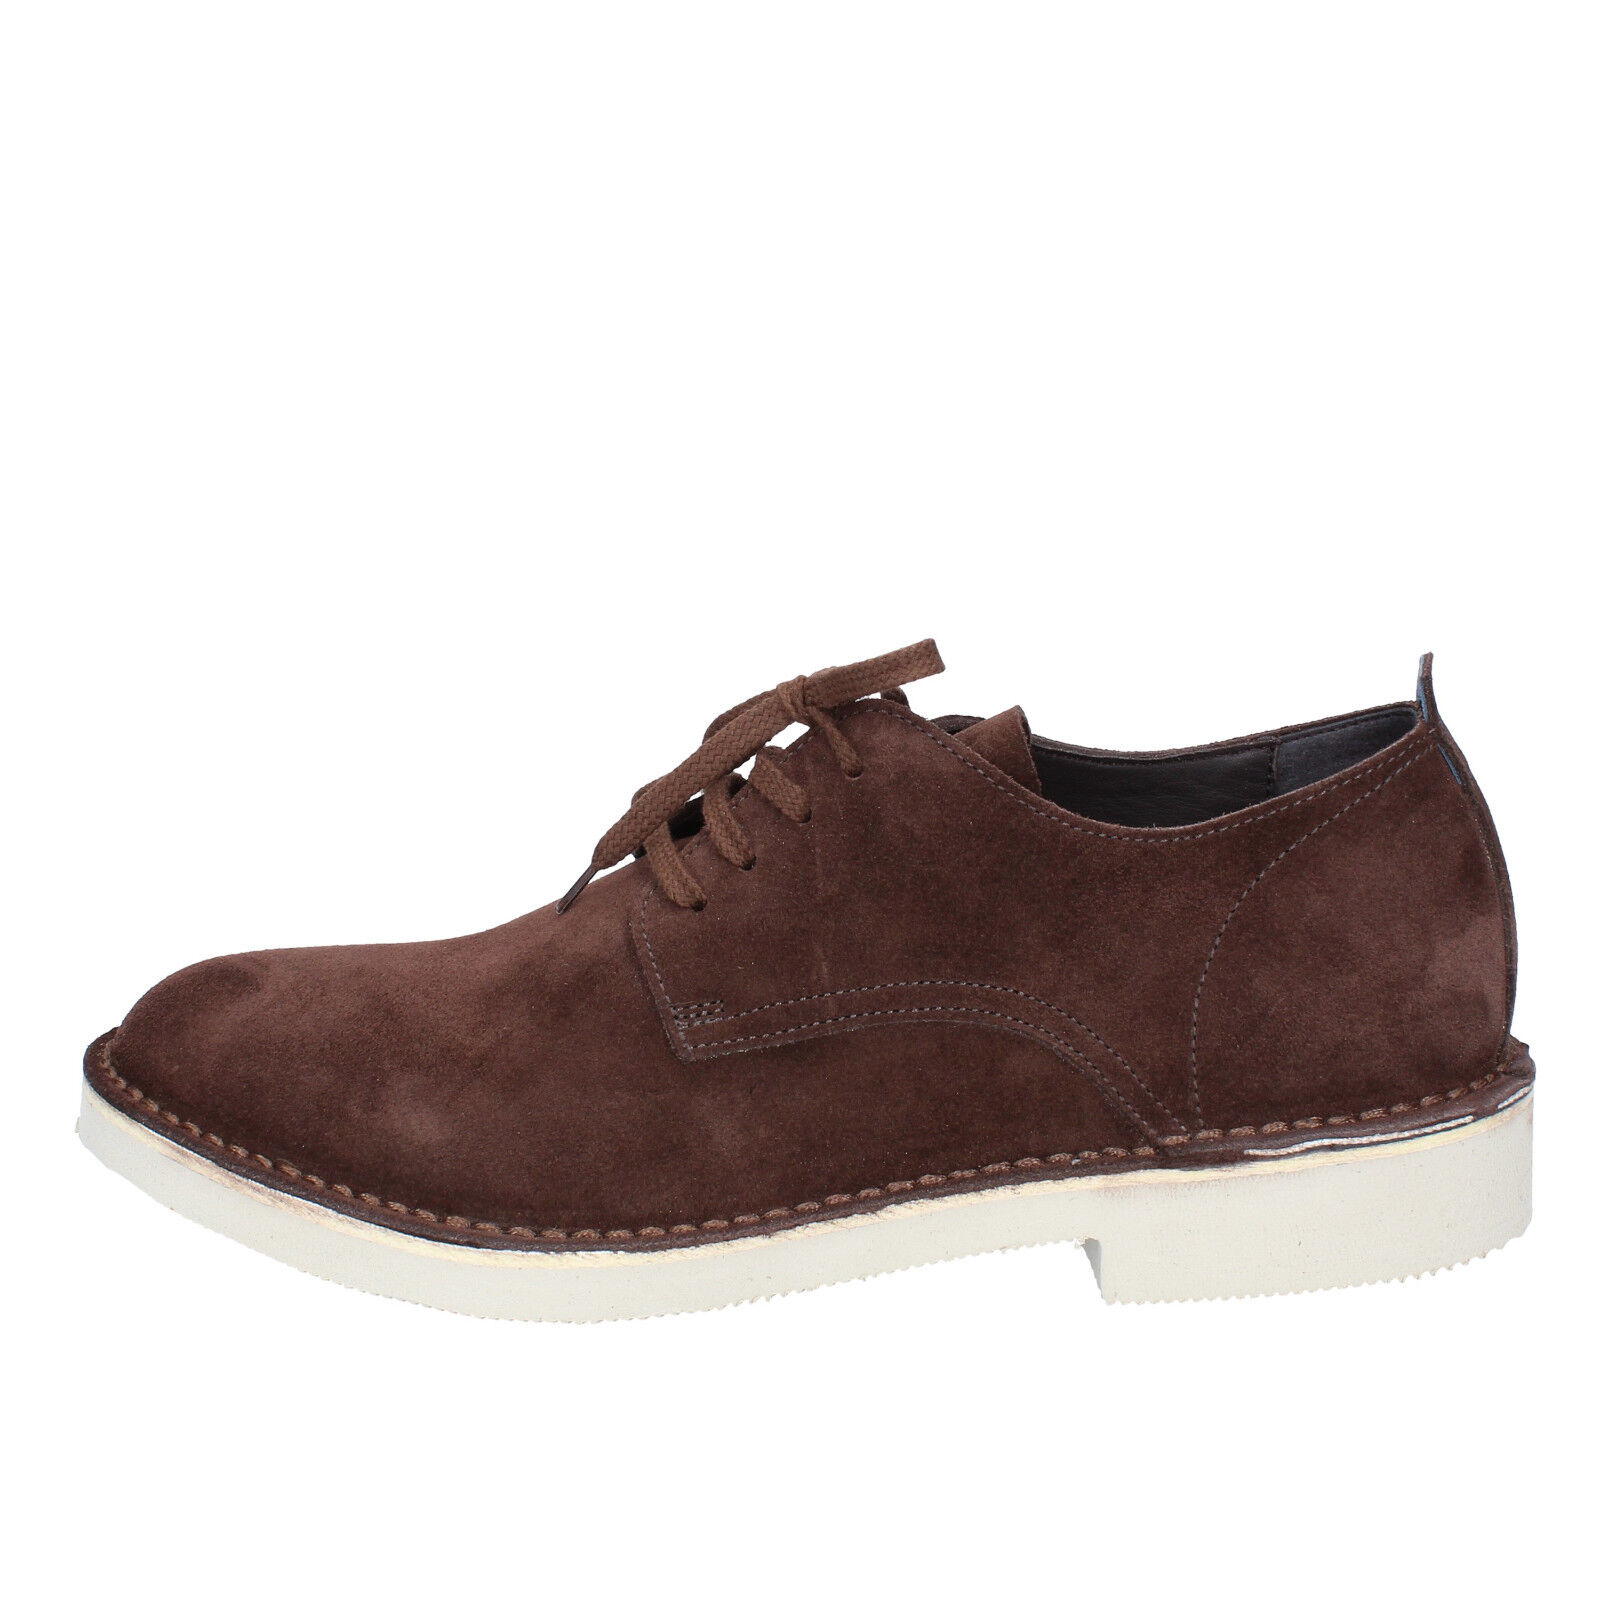 Men's shoes MOMA 10,5 (EU 43,5) elegant brown suede AB442-E